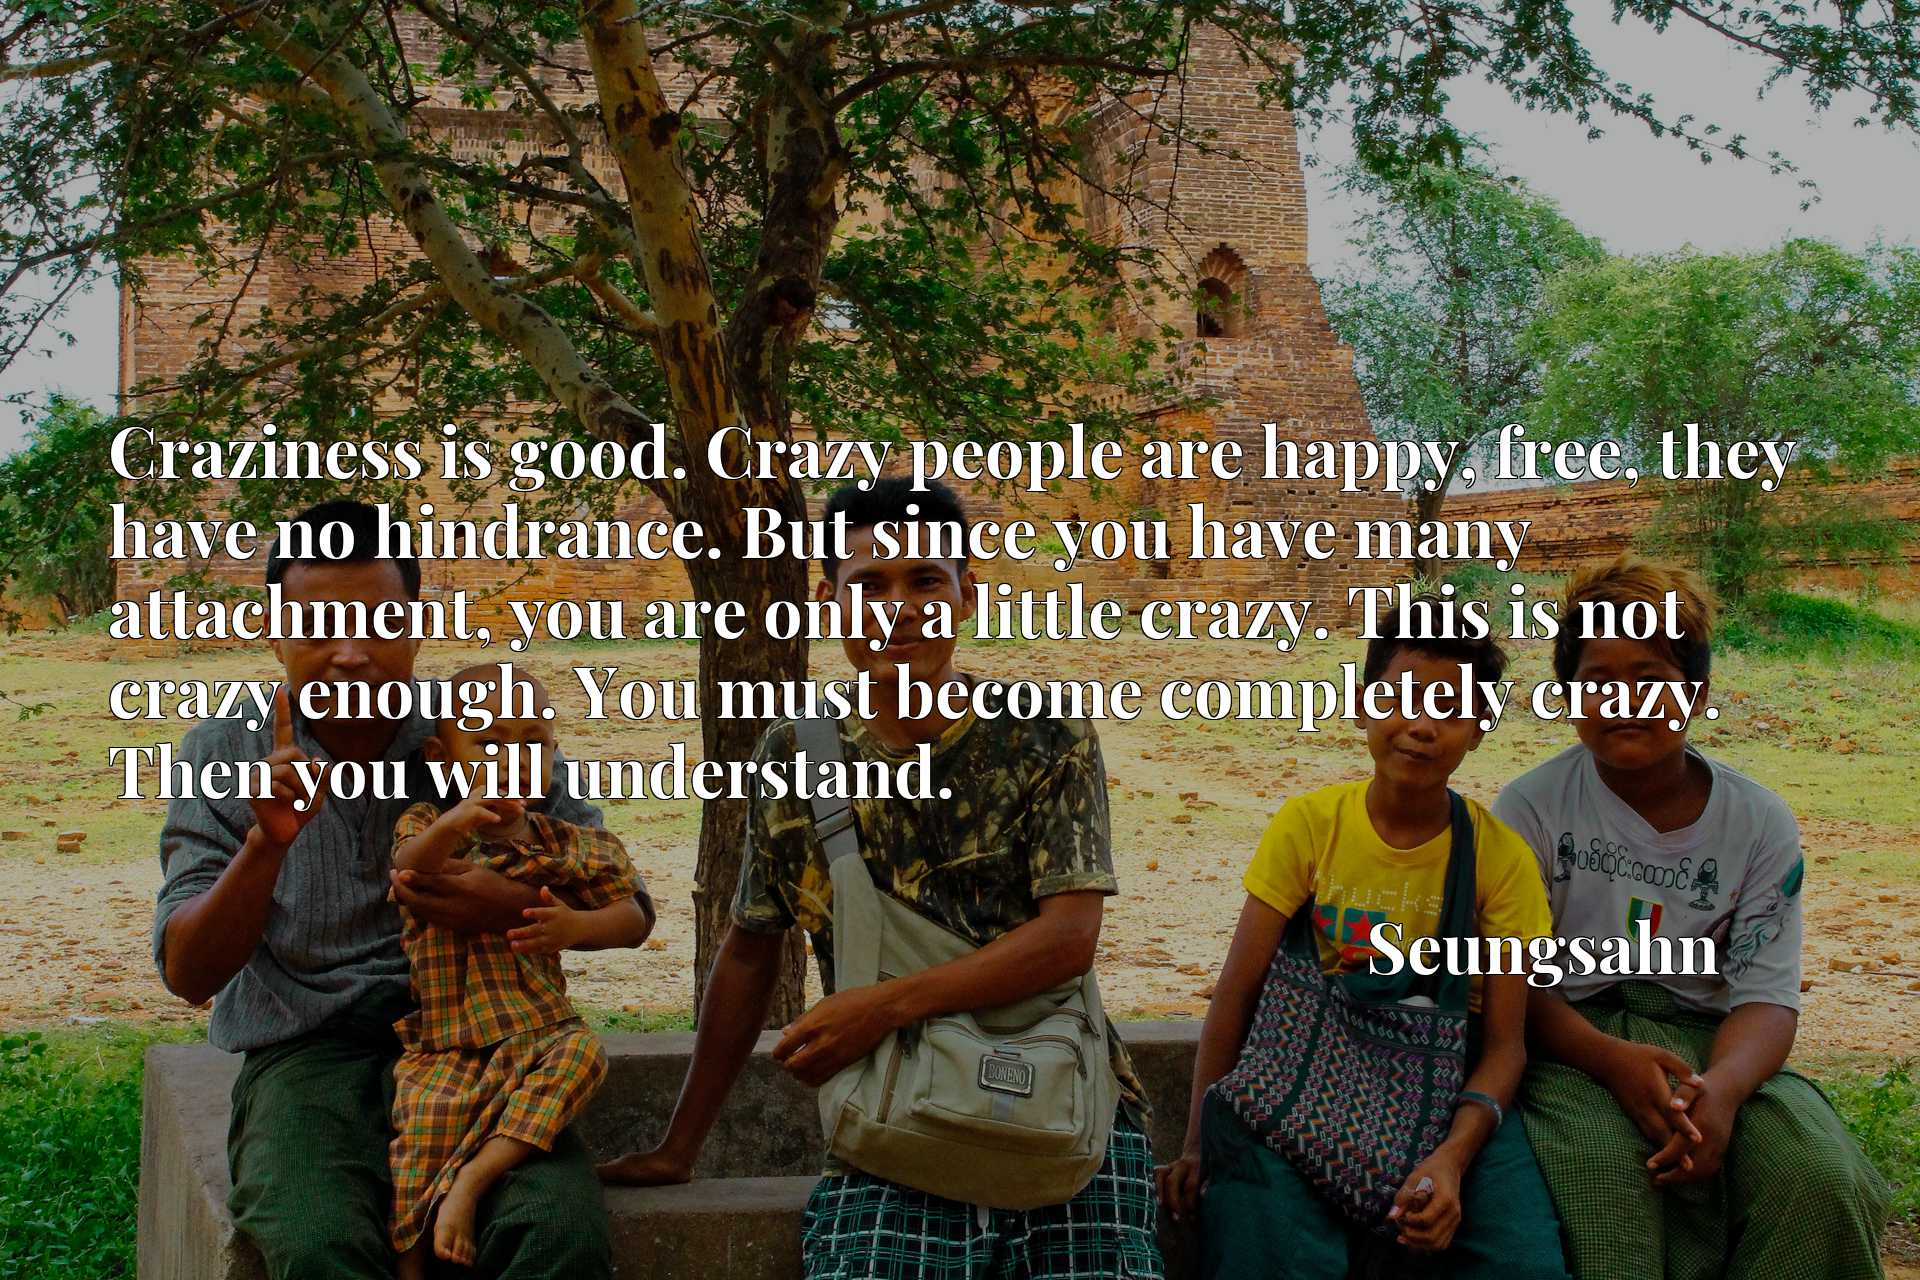 Craziness is good. Crazy people are happy, free, they have no hindrance. But since you have many attachment, you are only a little crazy. This is not crazy enough. You must become completely crazy. Then you will understand.